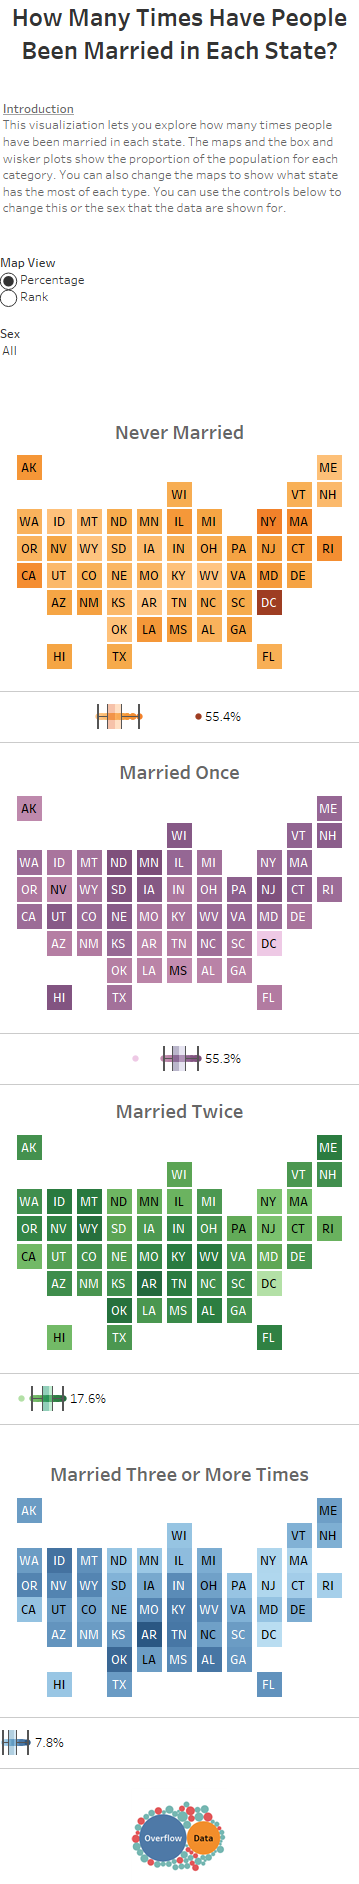 How Many Times Have People Been Married in Each State - Mobile